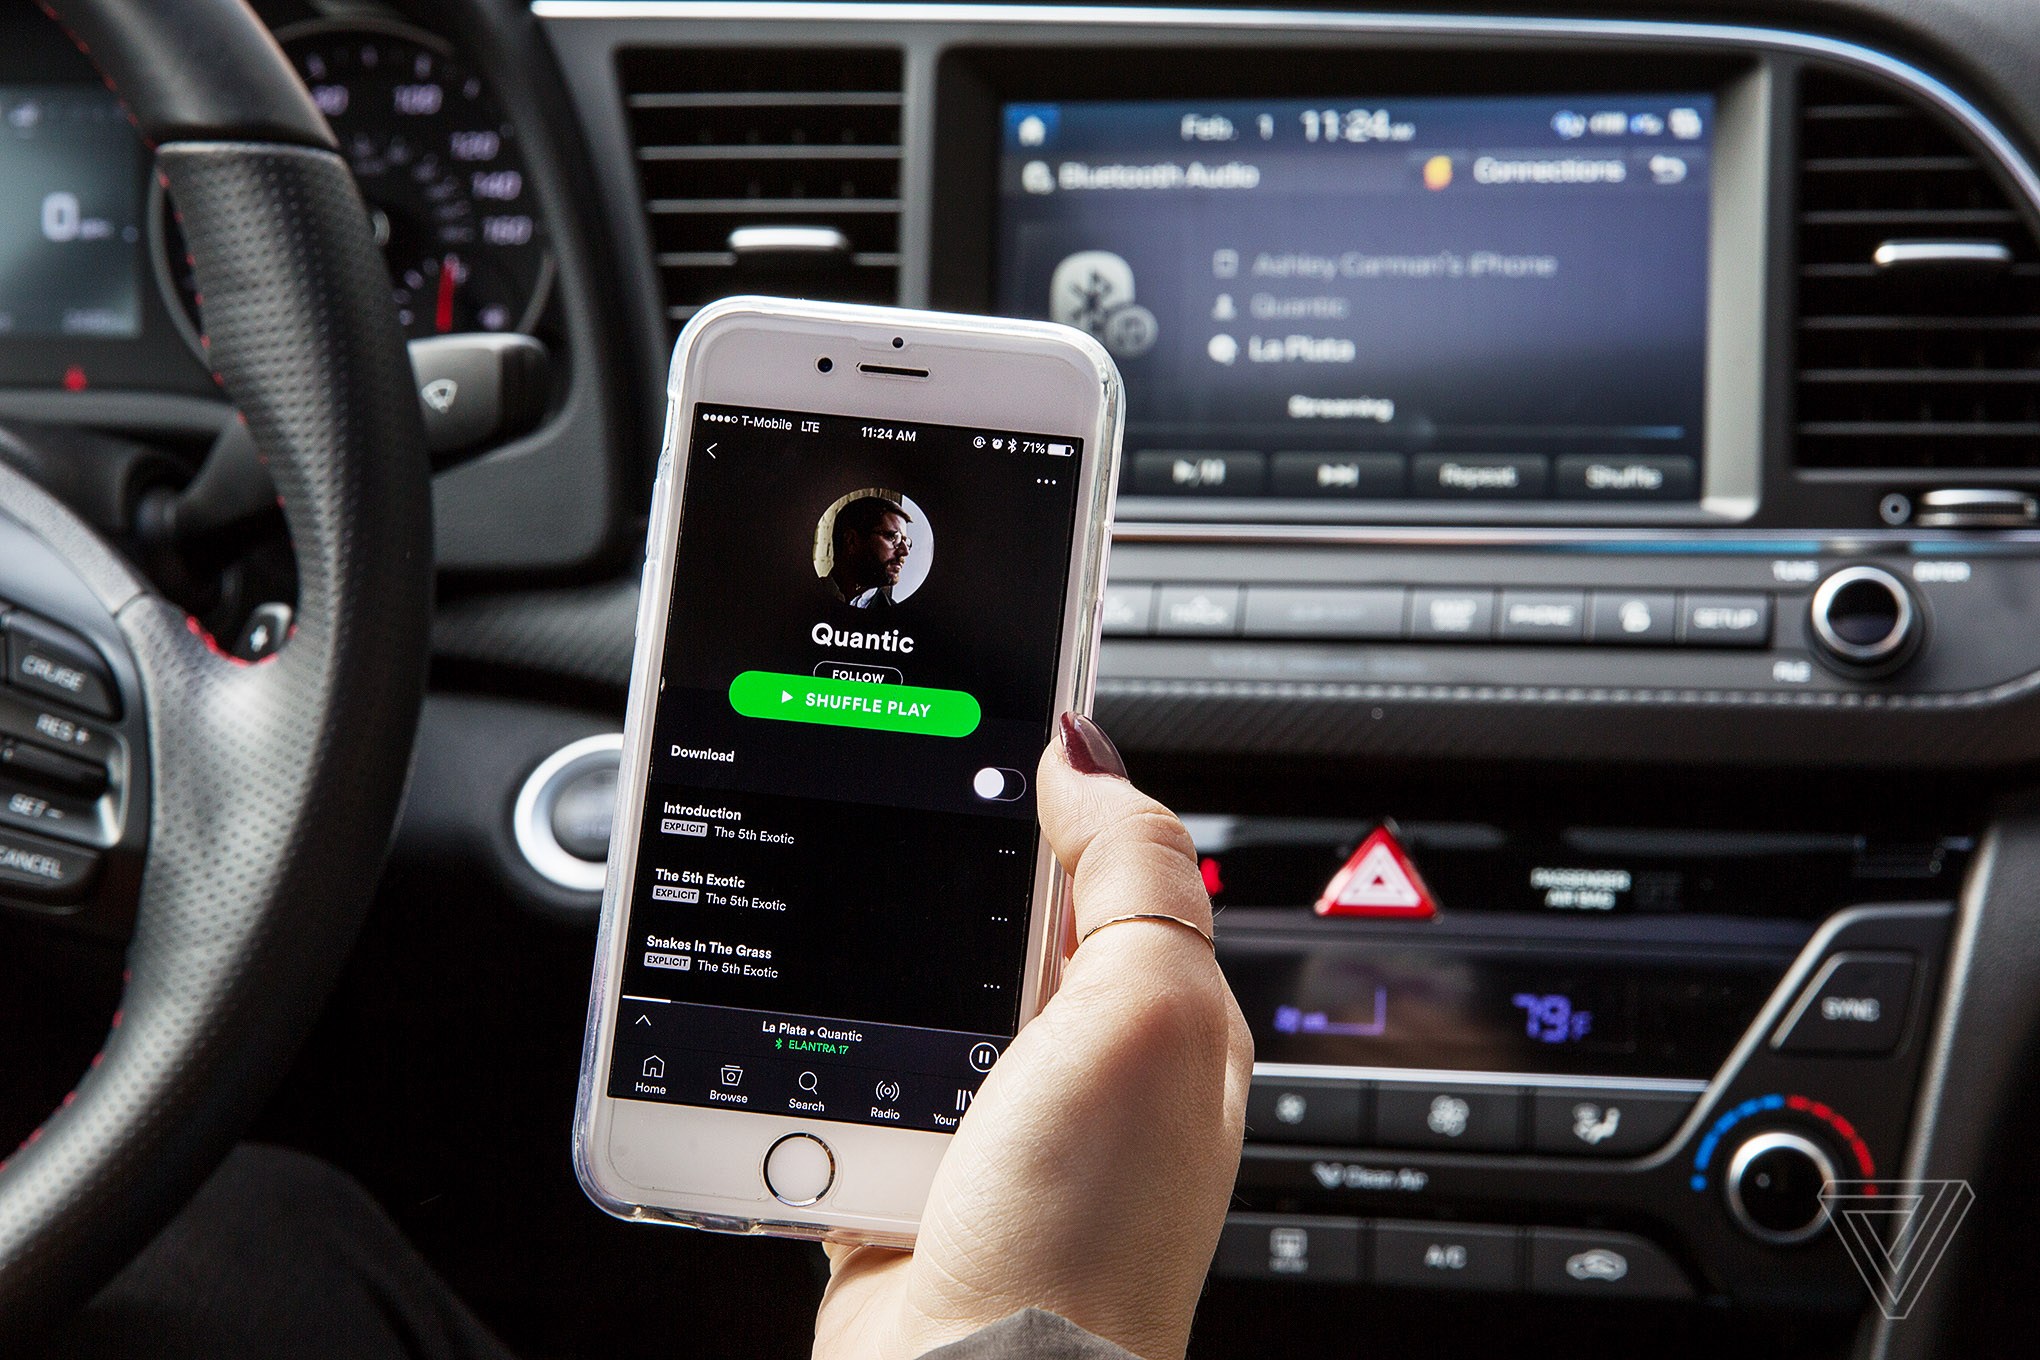 Spotify is preparing to launch a Hi-Fi music tier - The Verge